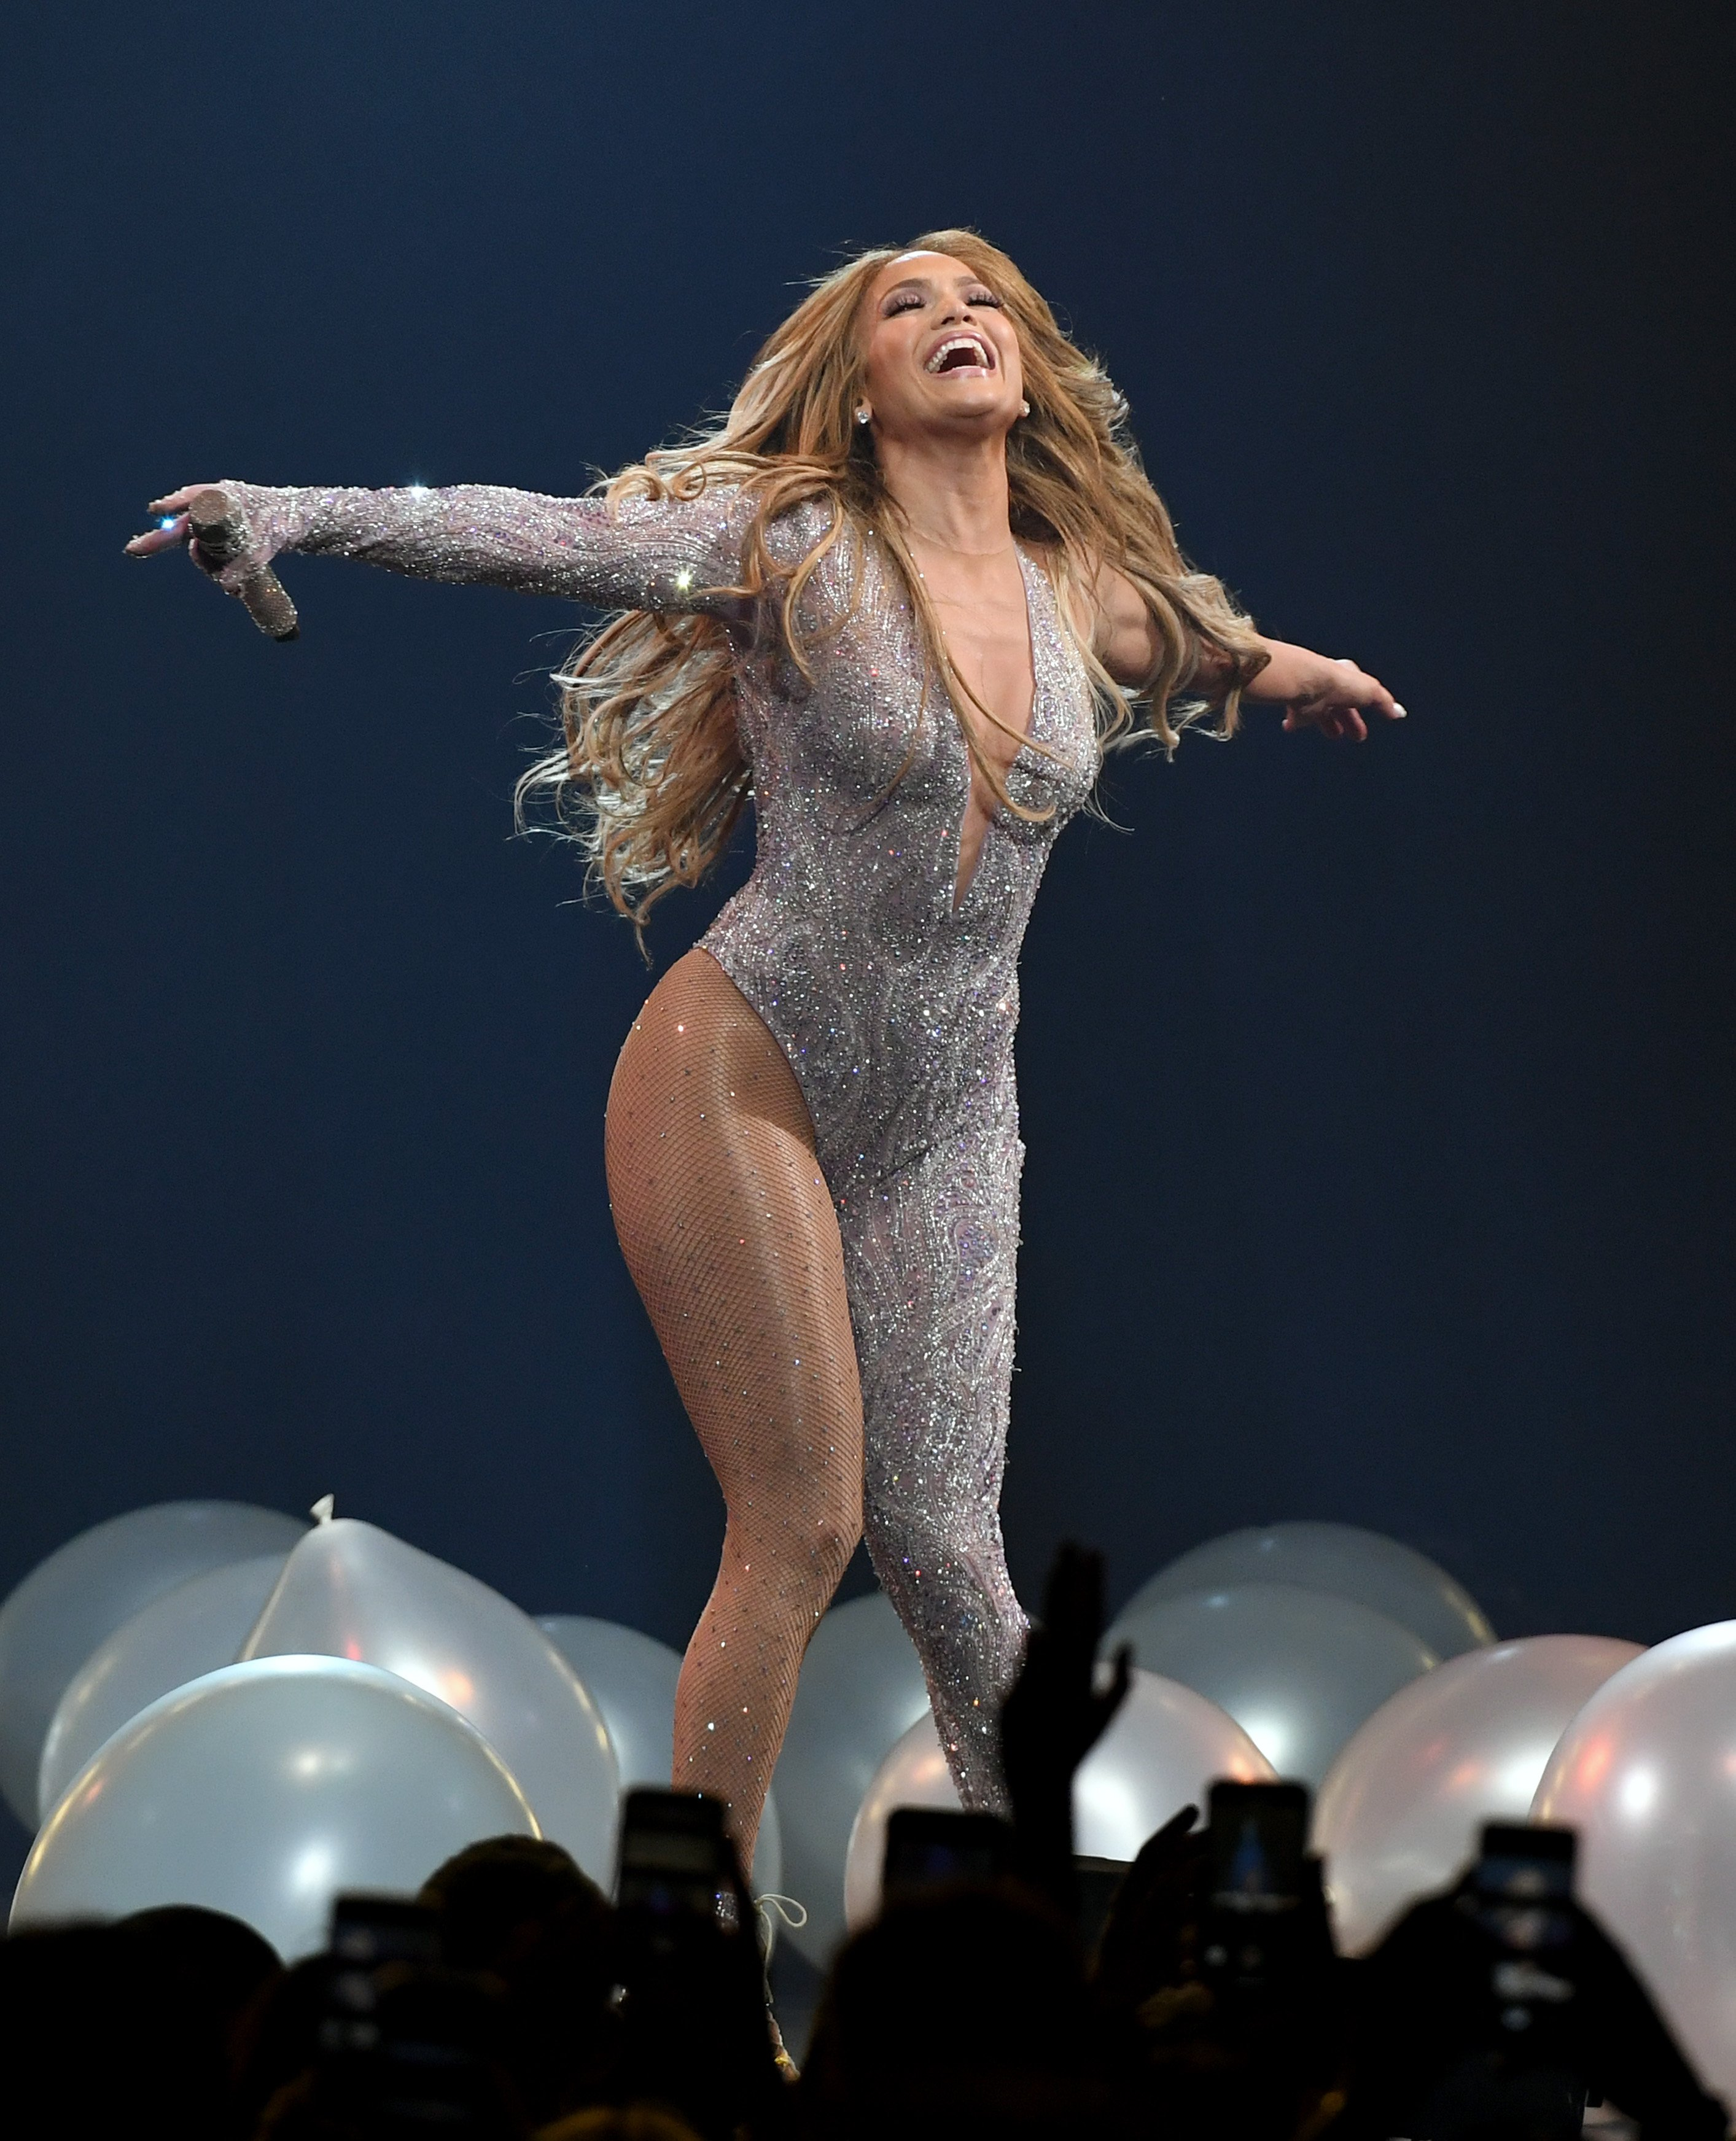 Jennifer Lopez performs at her It's My Party Tour at T-Mobile Arena, Las Vegas on June 15 | Photo: Getty Images